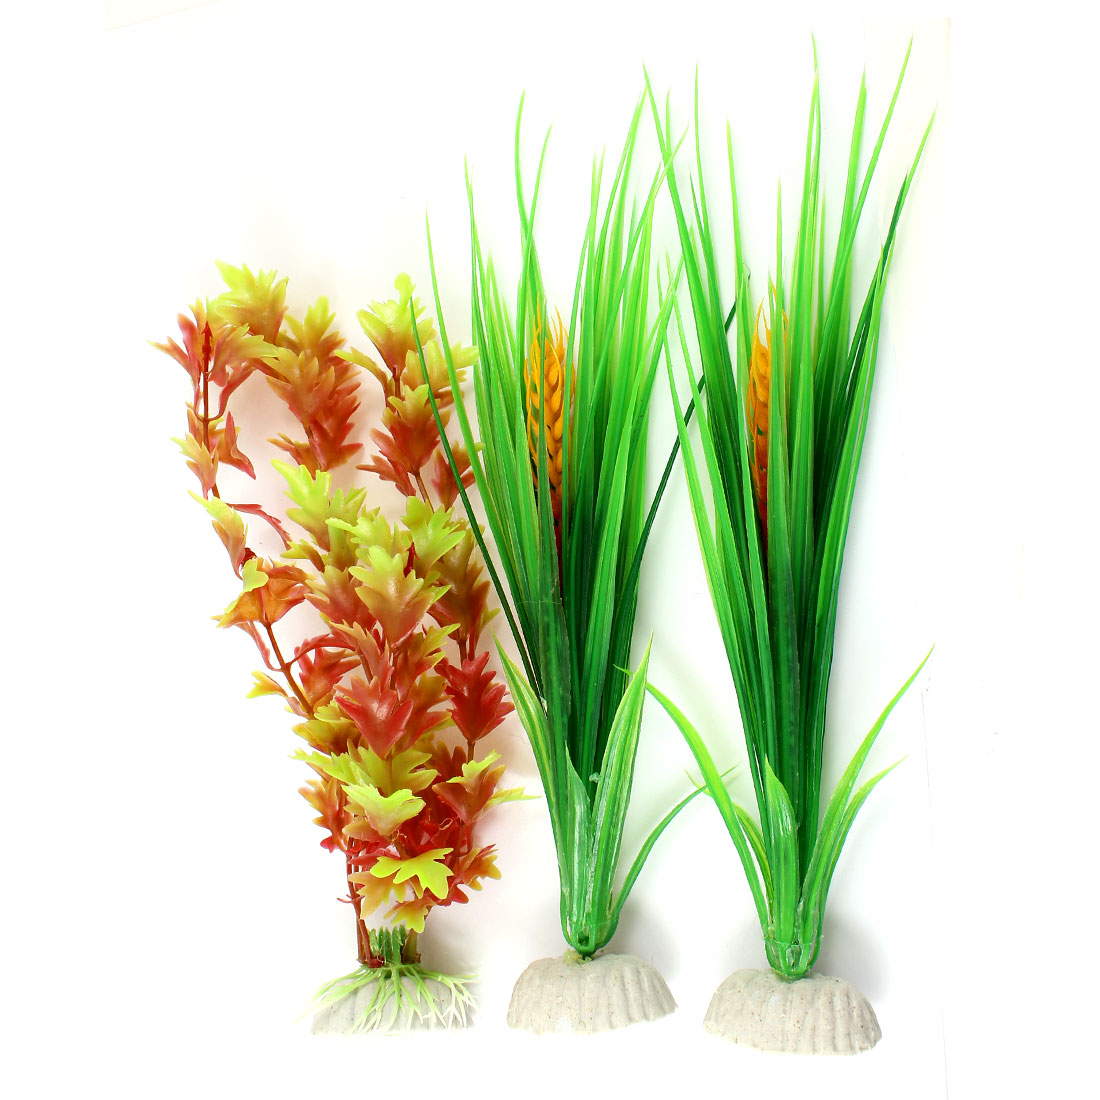 "Aquarium Fish Tank Landscaping Artificial Emulational Underwater Water Plant Grass Ornament Green Amaranth 9.4"" Height 3pcs"